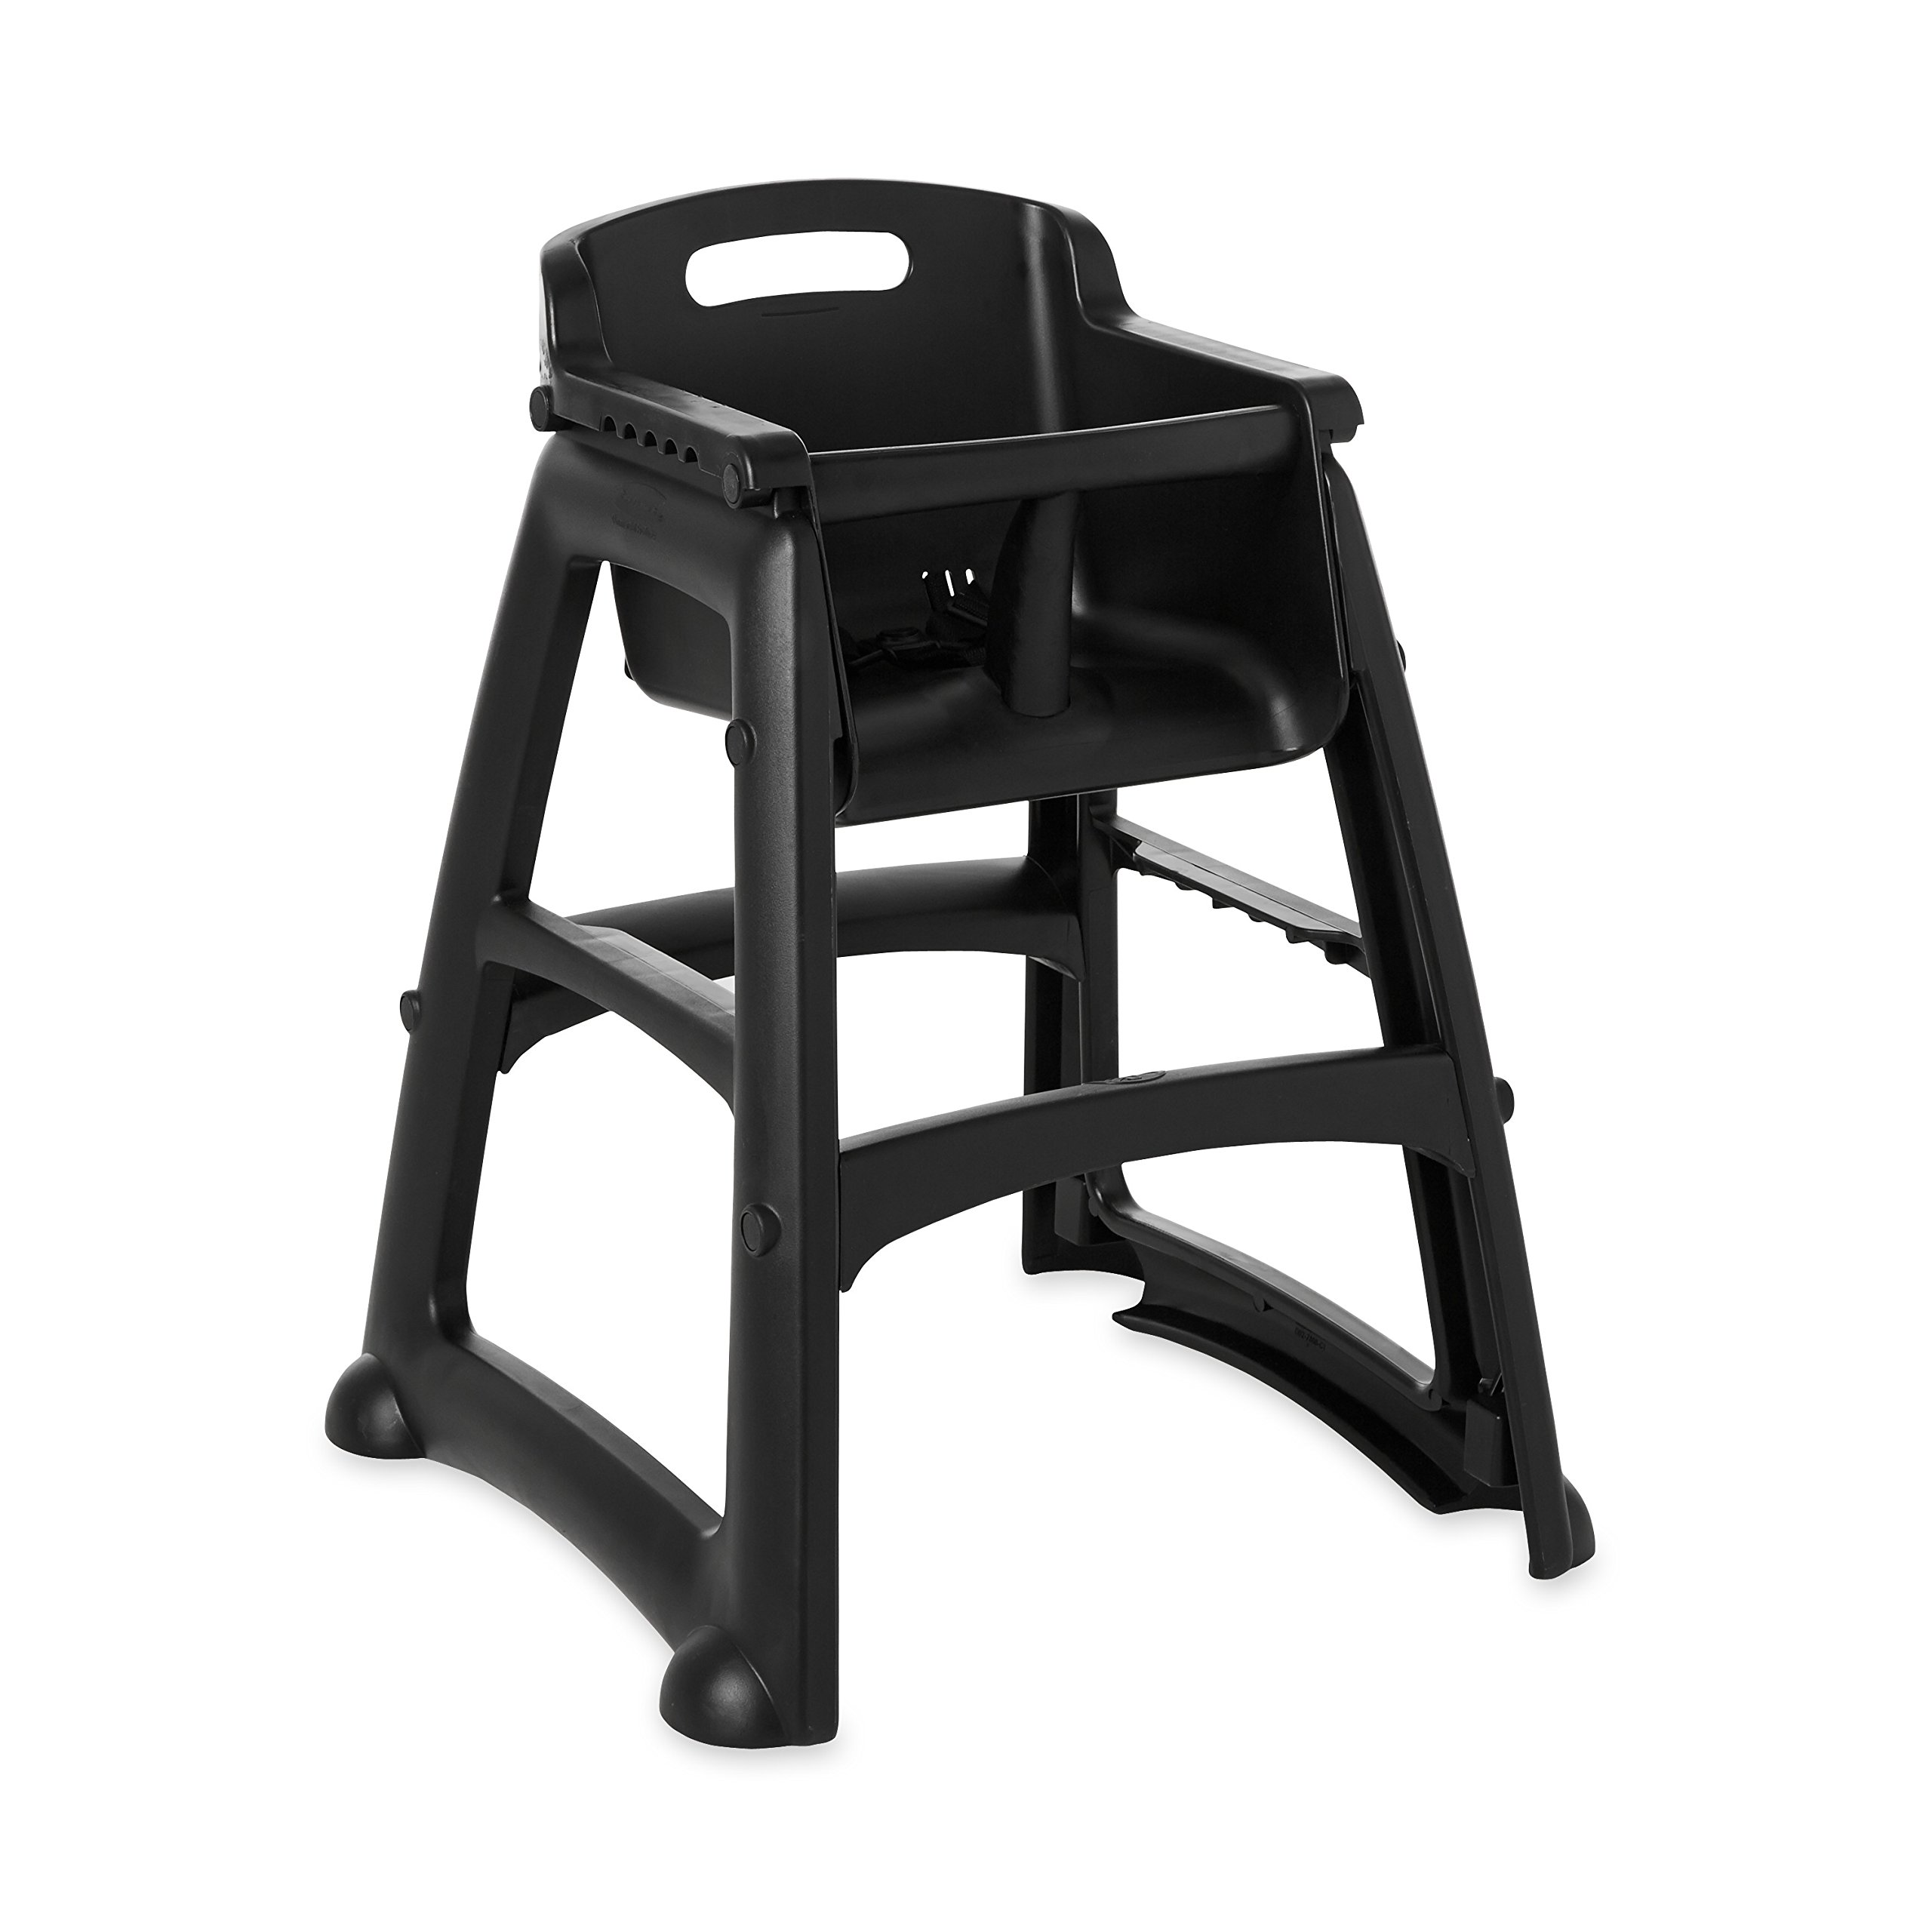 Rubbermaid Commercial Sturdy Chair Youth Seat High Chair, Black, Ready-To-Assemble, FG781408BLA